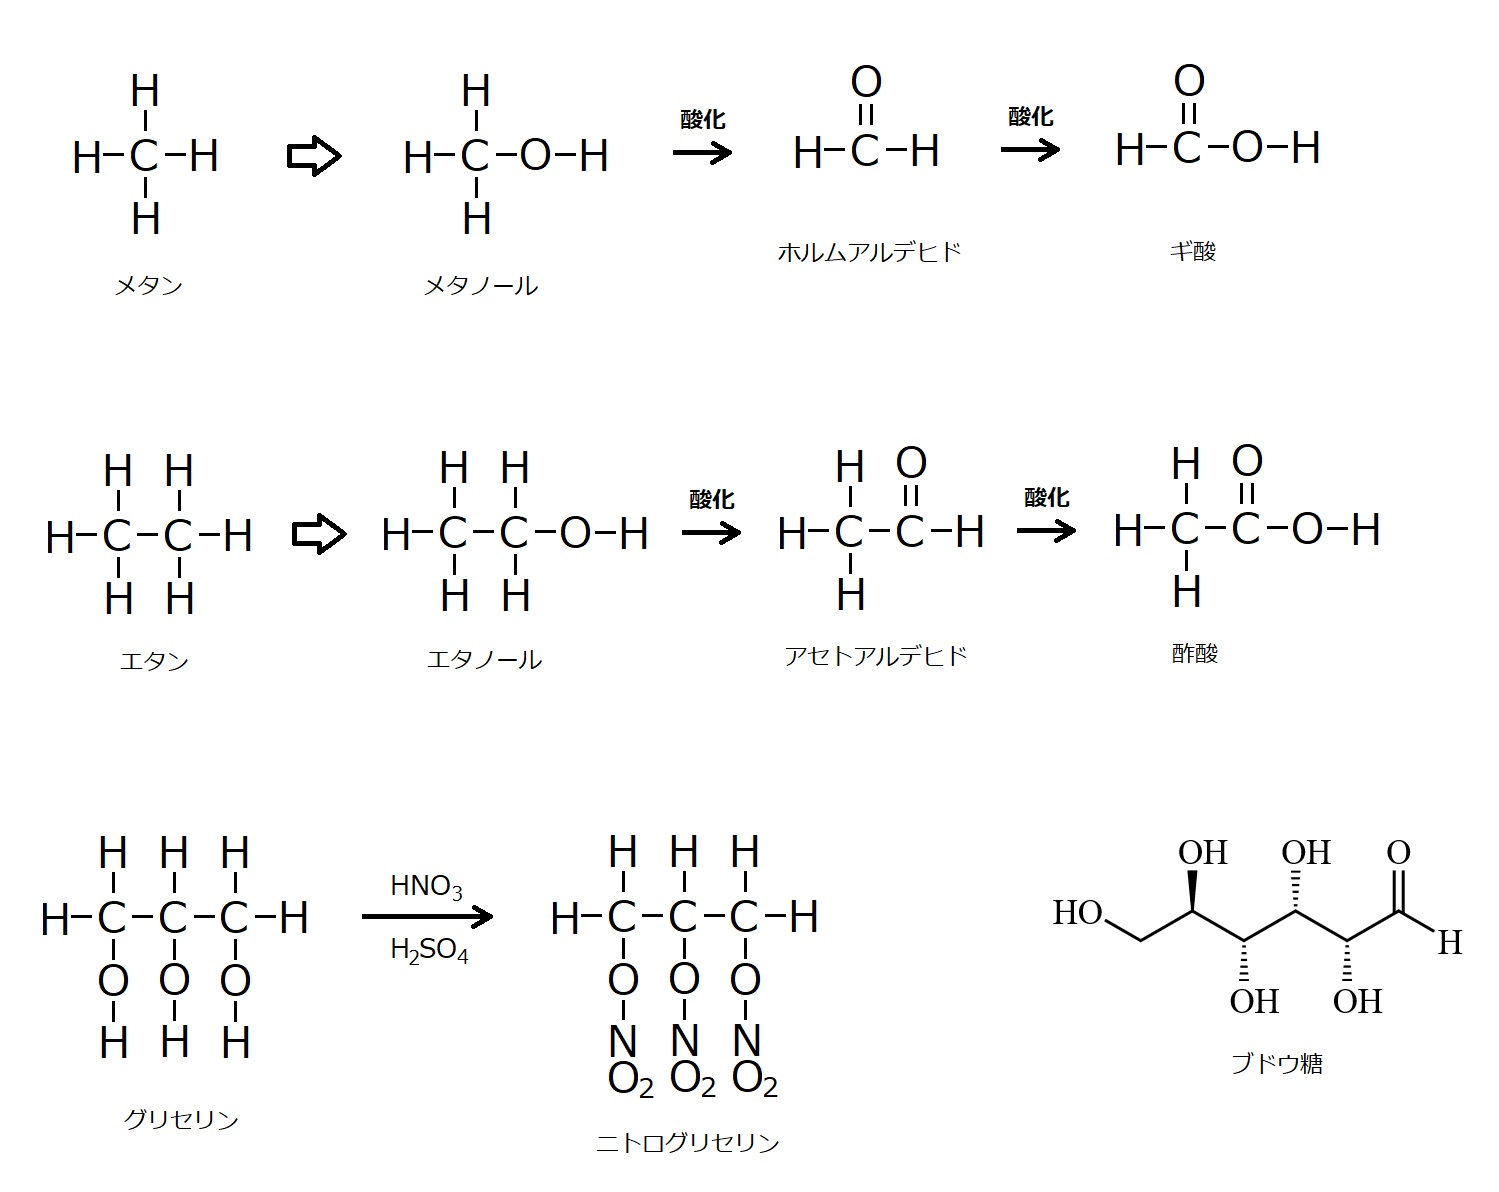 Alkane_alcohol_aldehyde_carboxylic_